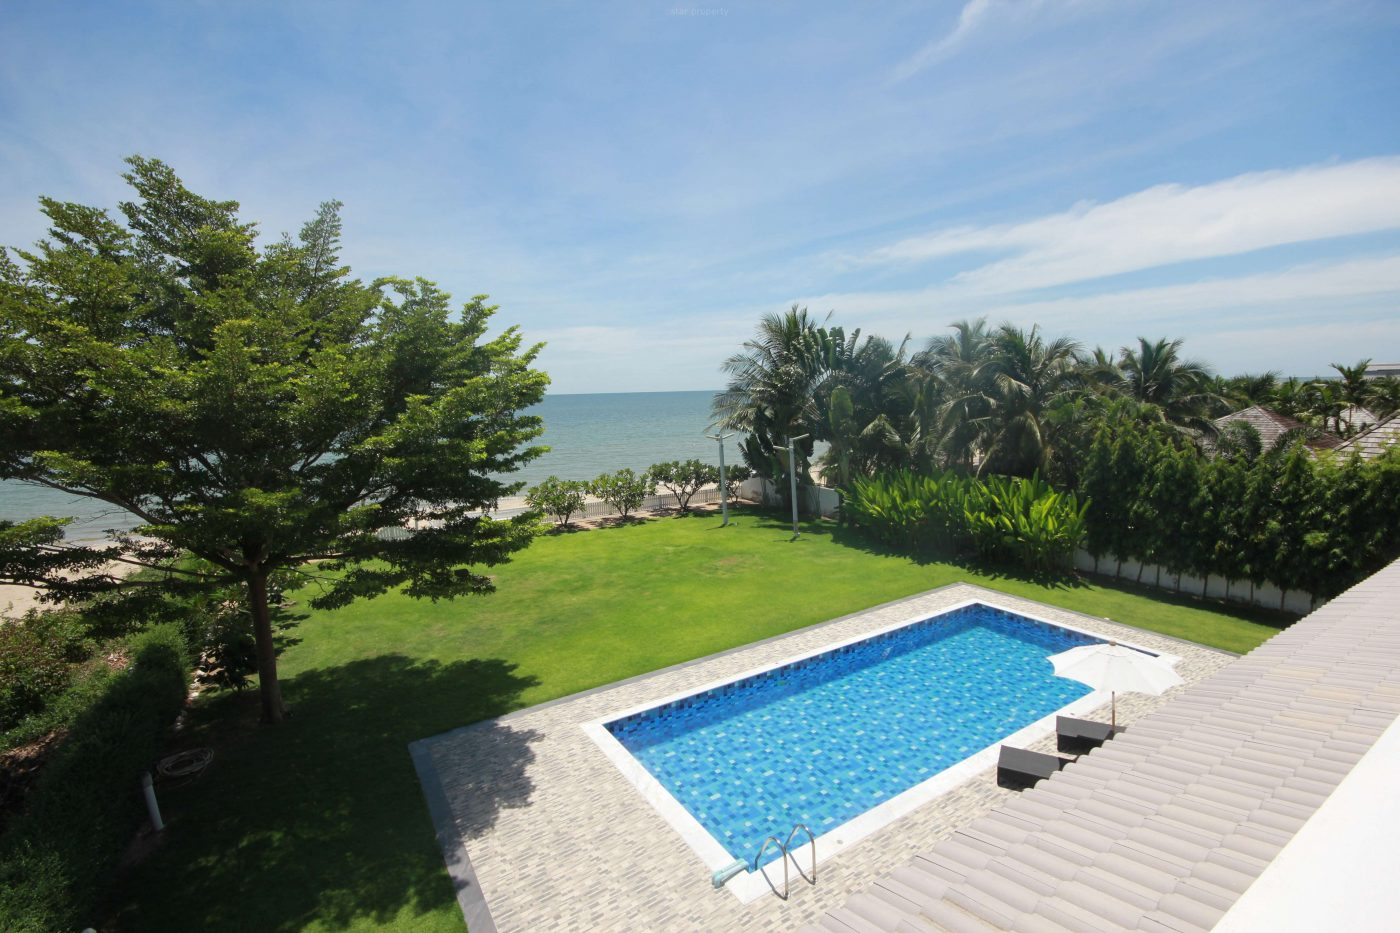 House On The Beach for Sale at Cha Am at Hua Hin District, Prachuap Khiri Khan, Thailand